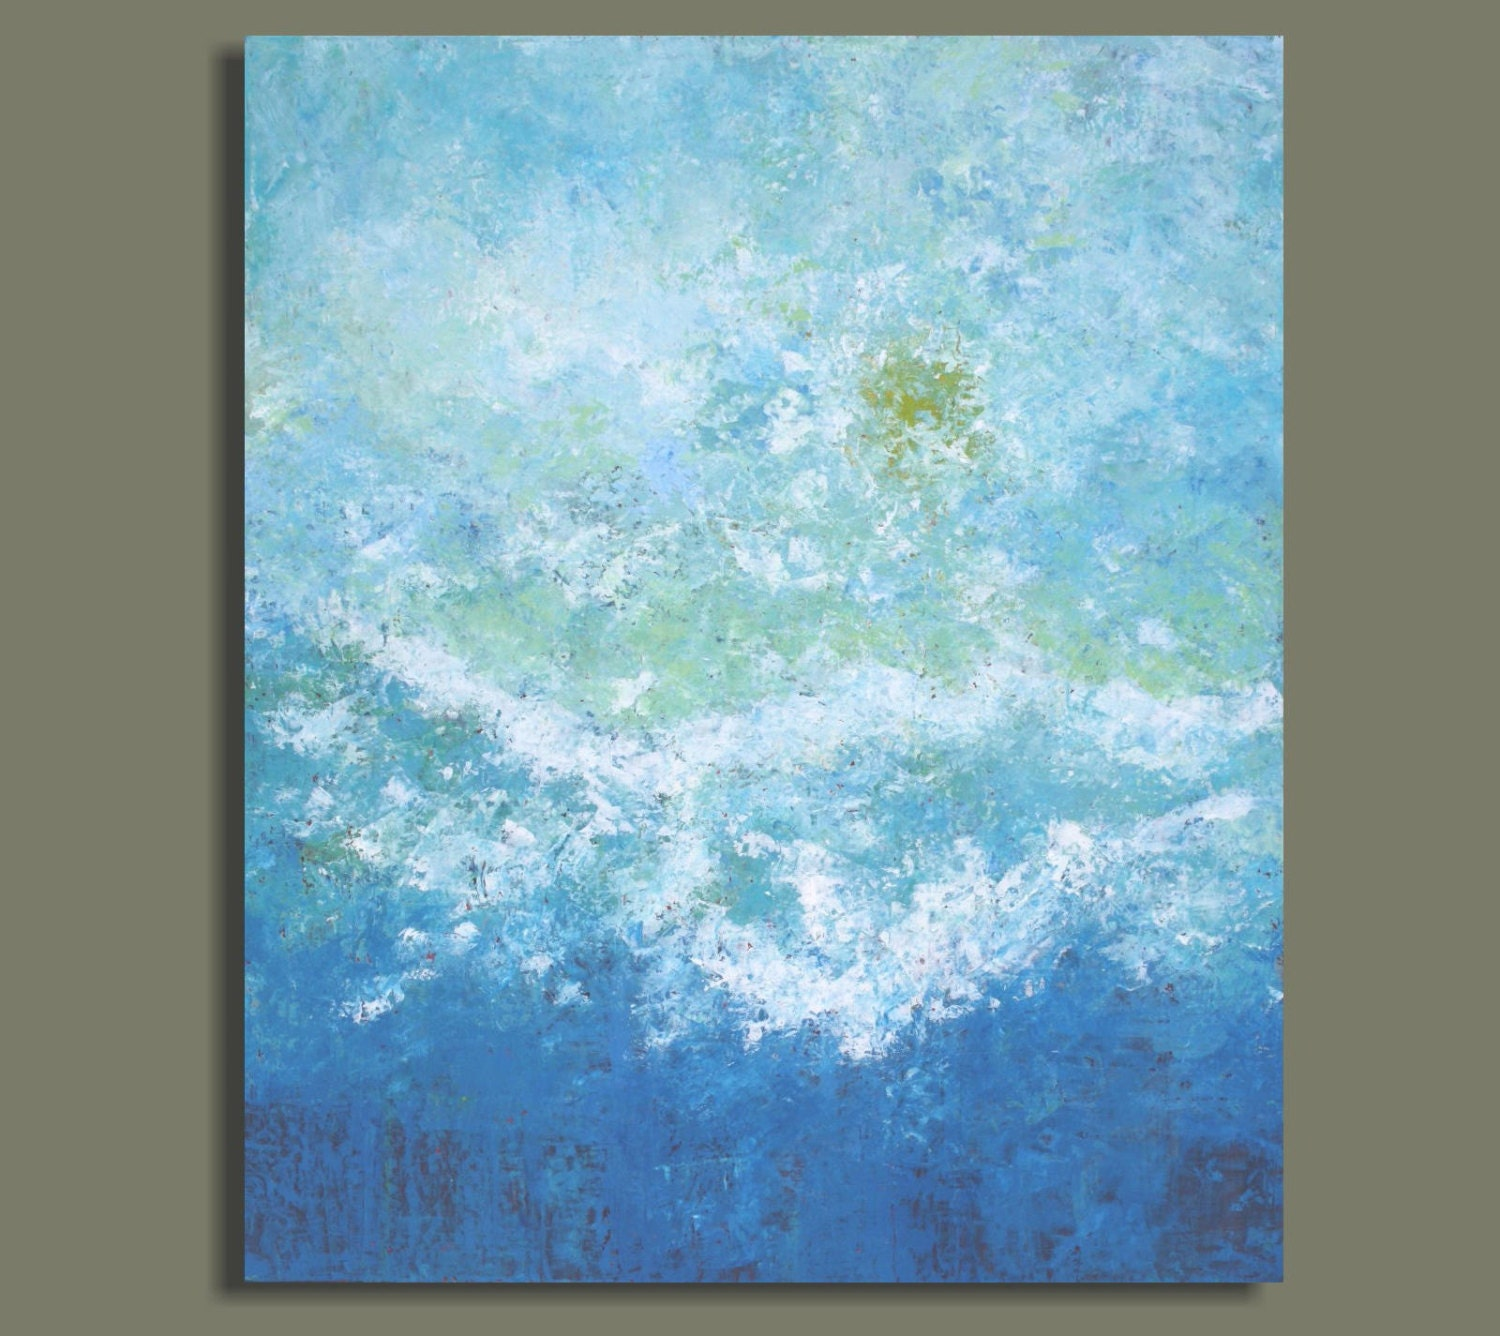 OCEAN painting large abstract painting abstract ocean aqua